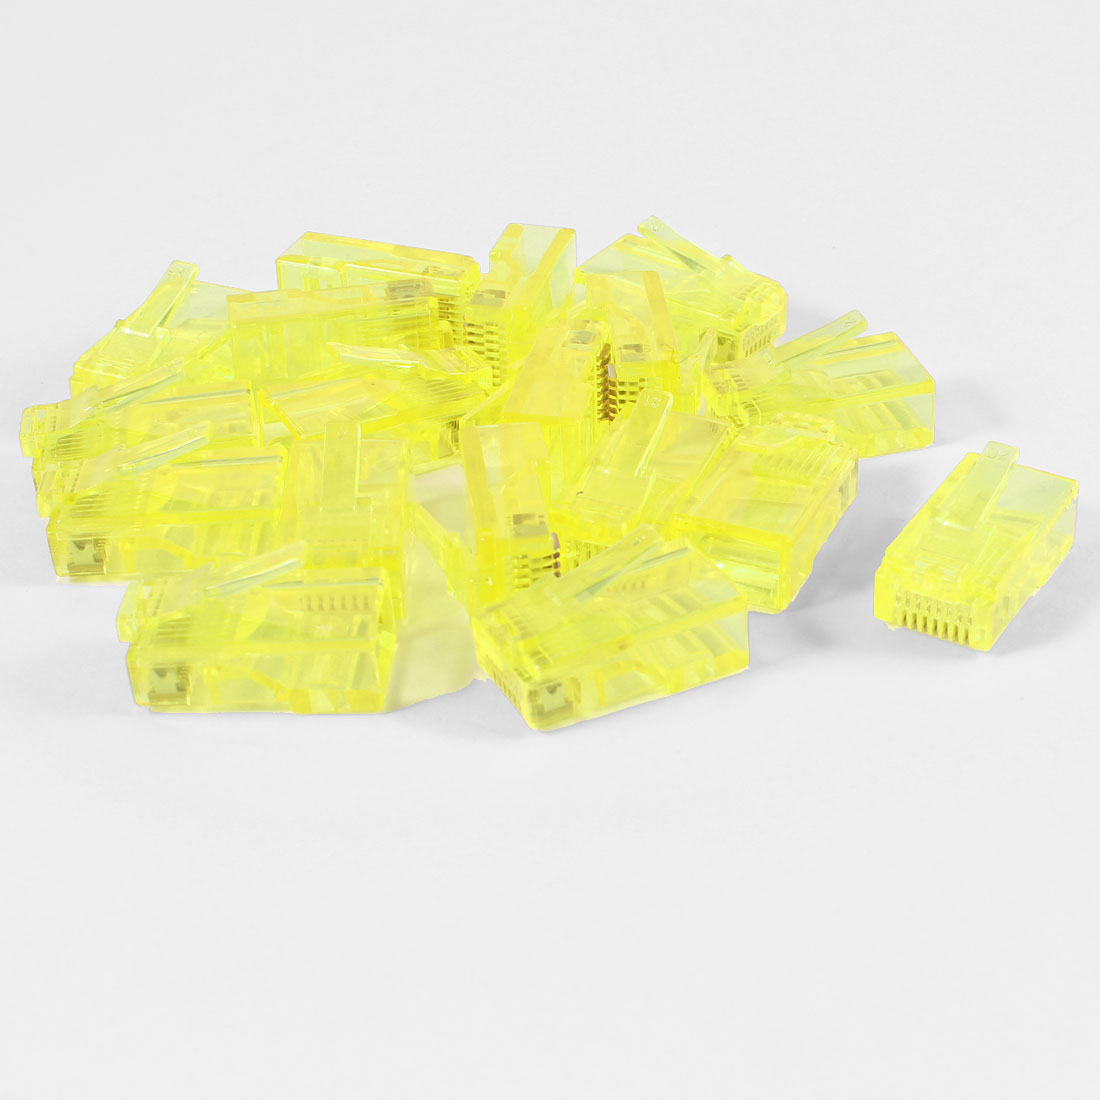 18 Pcs Yellow Plastic Shell RJ45 8P8C Modular Jack End Network Connector